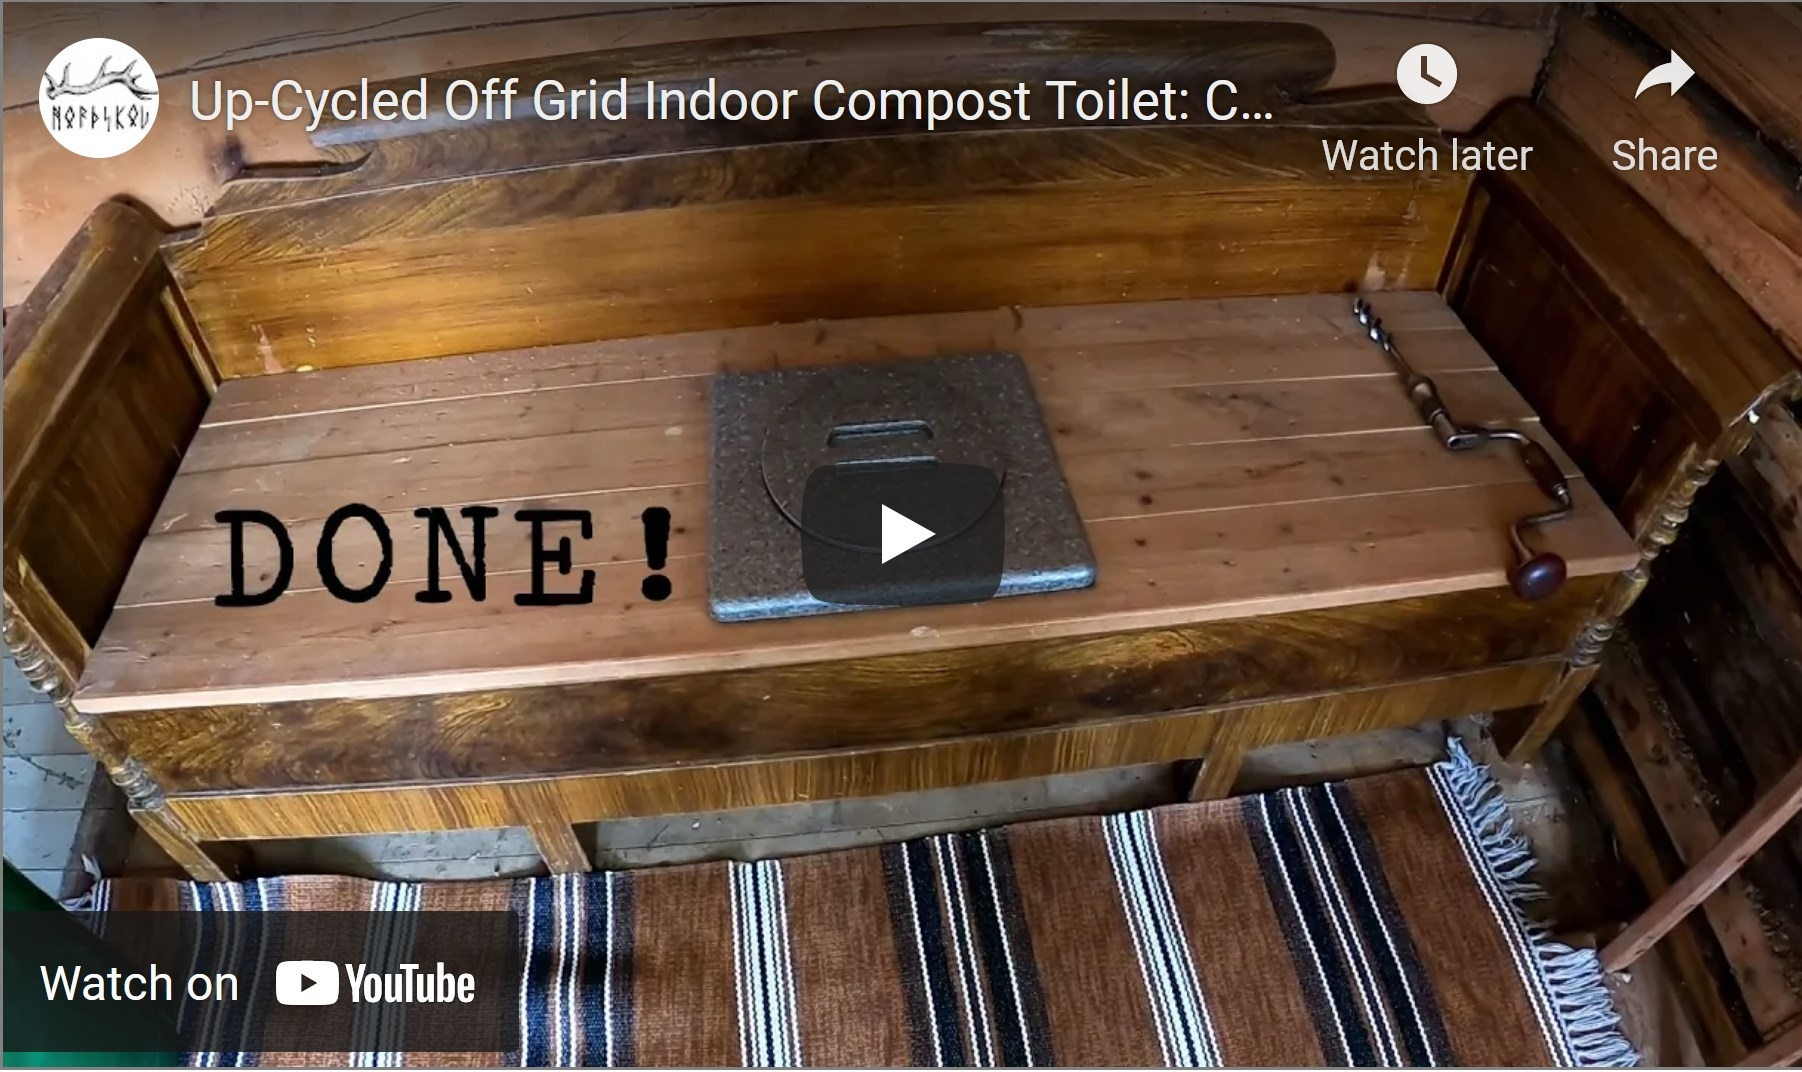 Up-Cycled Off Grid Indoor Compost Toilet